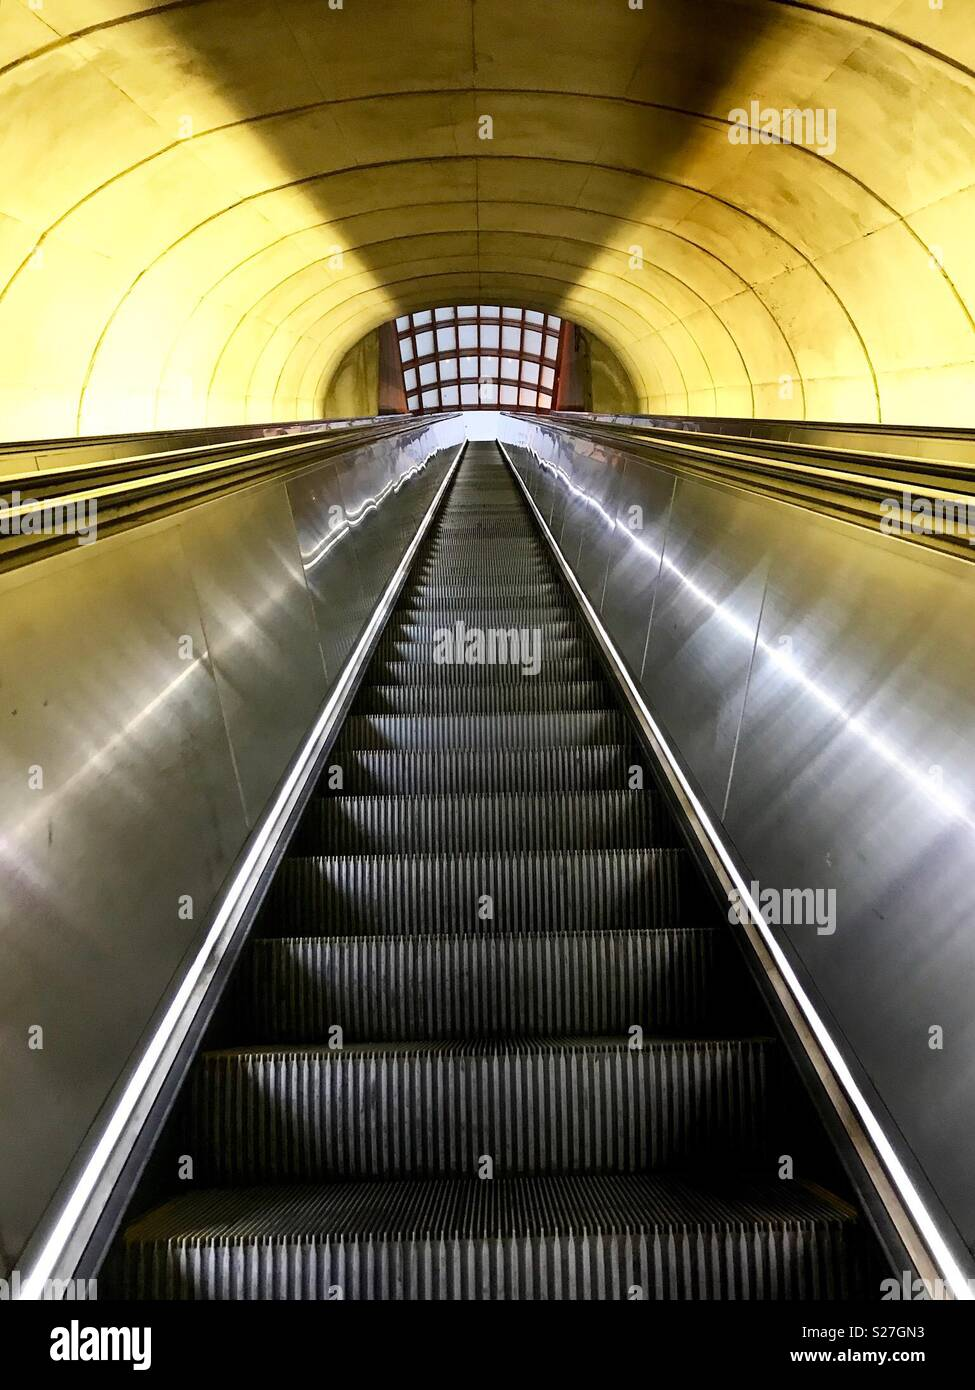 Metro, lines, and perspectives - Stock Image